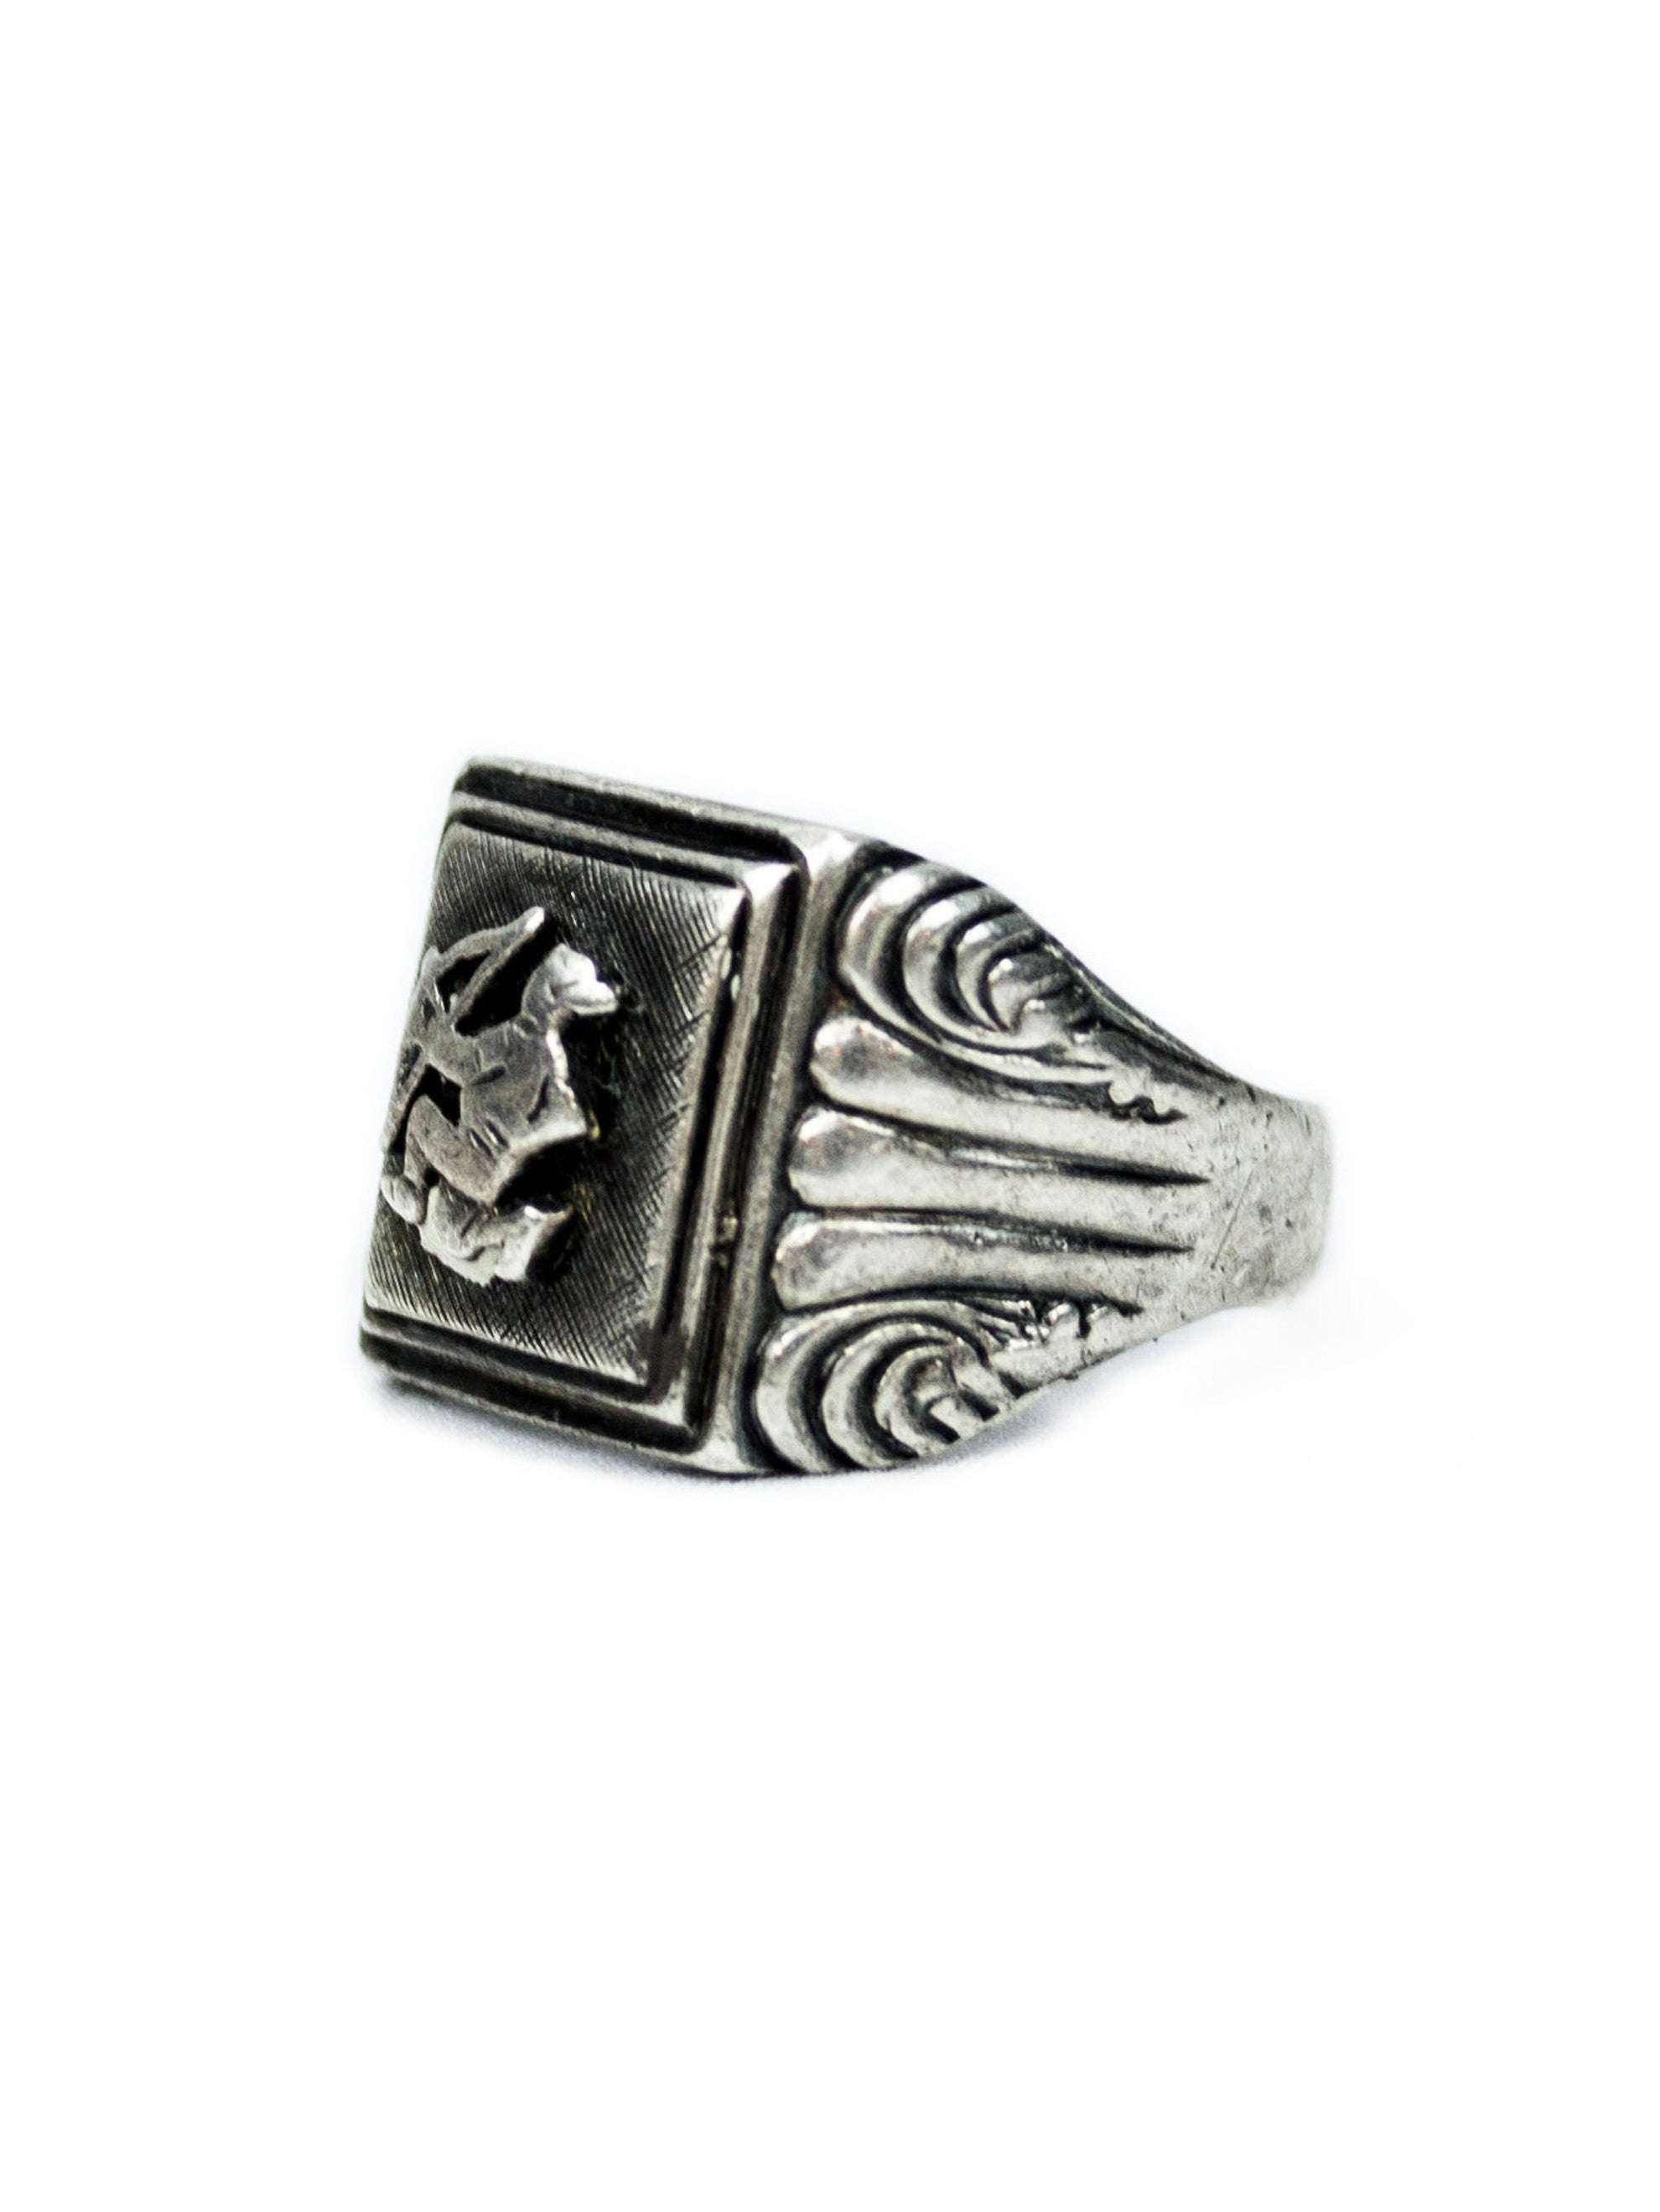 10.25 Vintage 1930's Sterling Silver Archer Ring 2